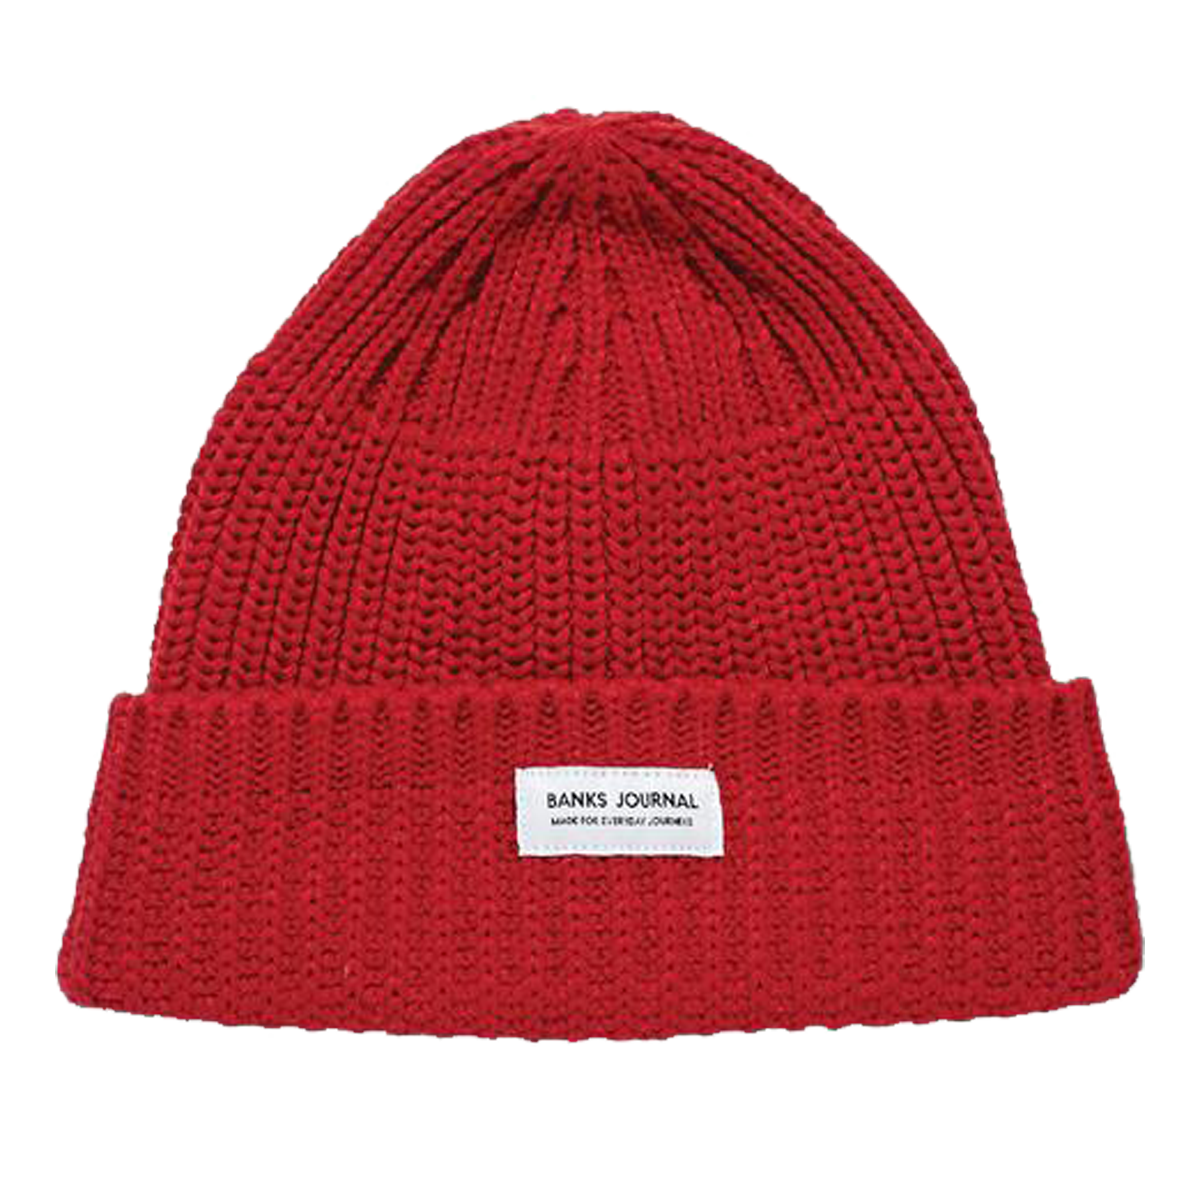 Made For You Beanie - Vintage Red